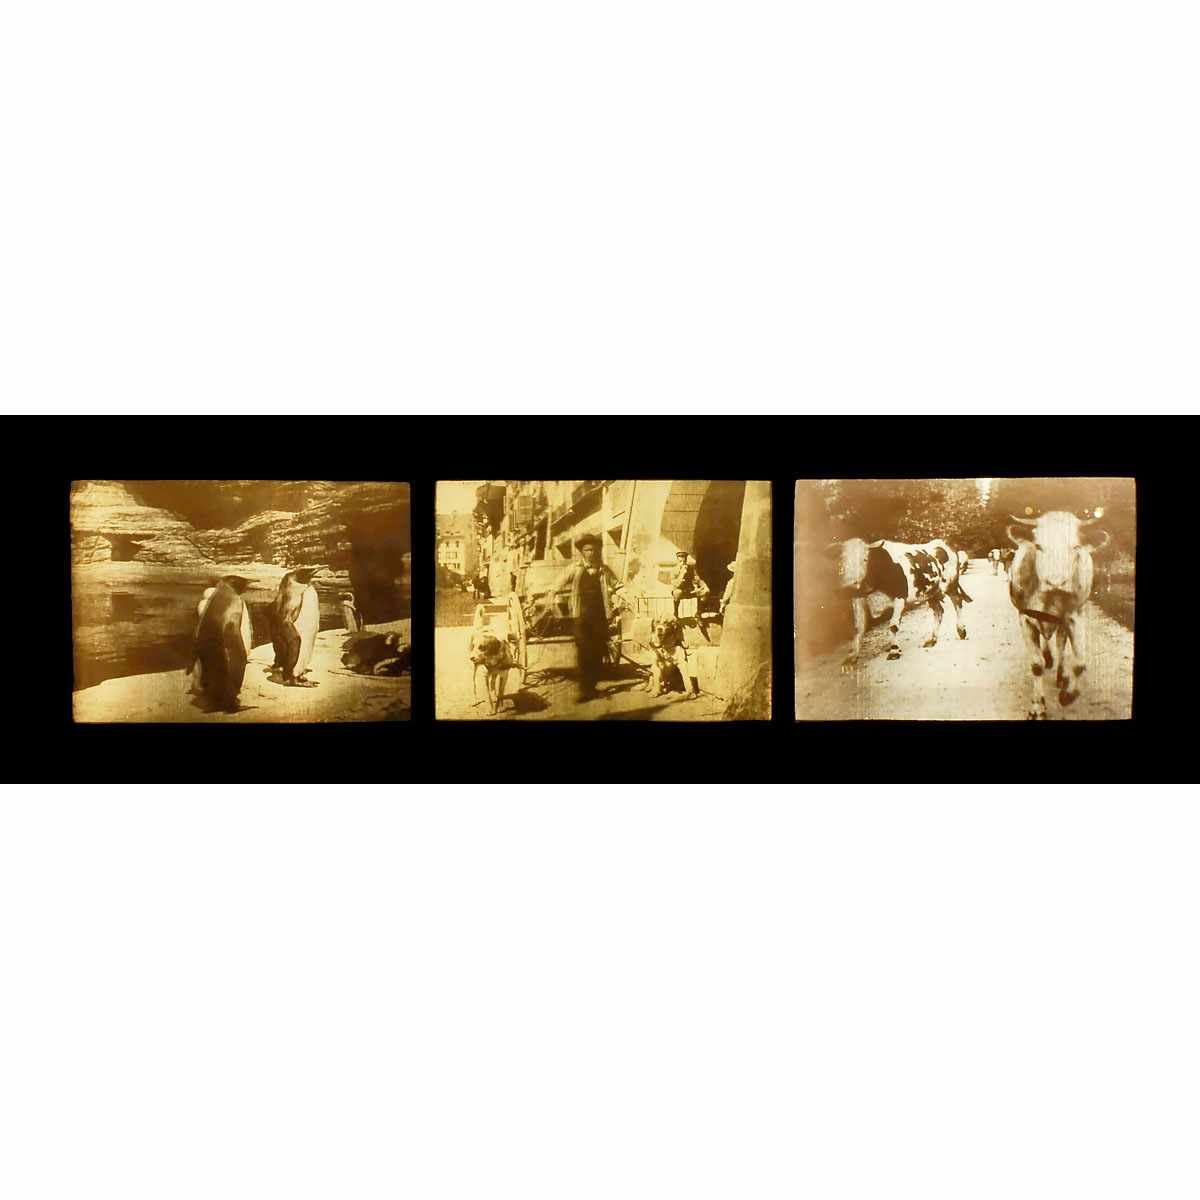 """Auktionslos 35 - 3 x 3D Lenticular Picture by W.R. Hess, c. 1912 """"Stereo-Photo nach W.R. Hess - Stereo-Photographie"""